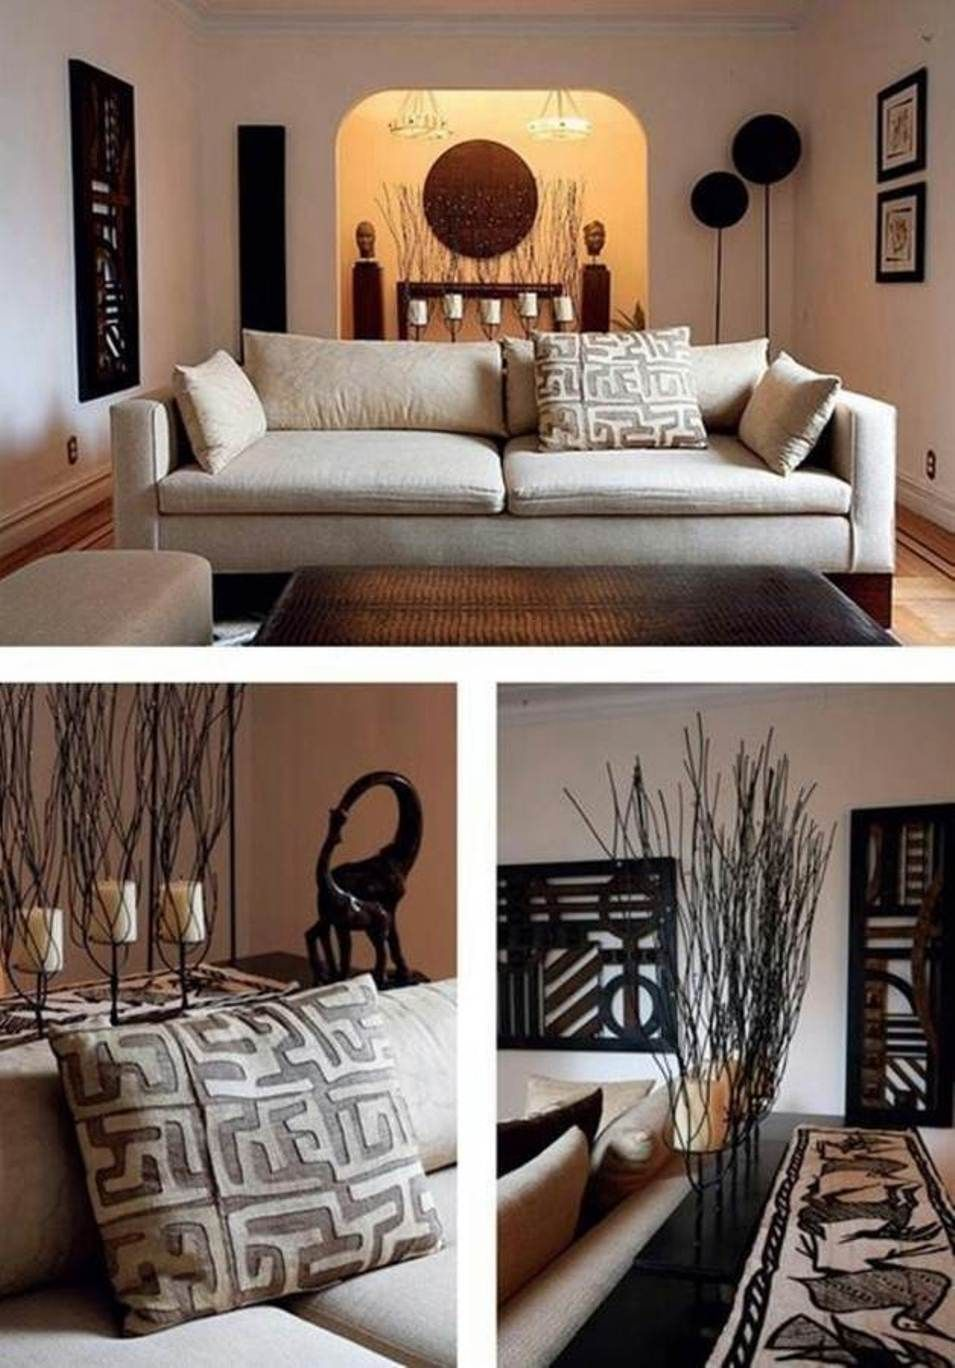 south african decorating ideas - American Home Decorations